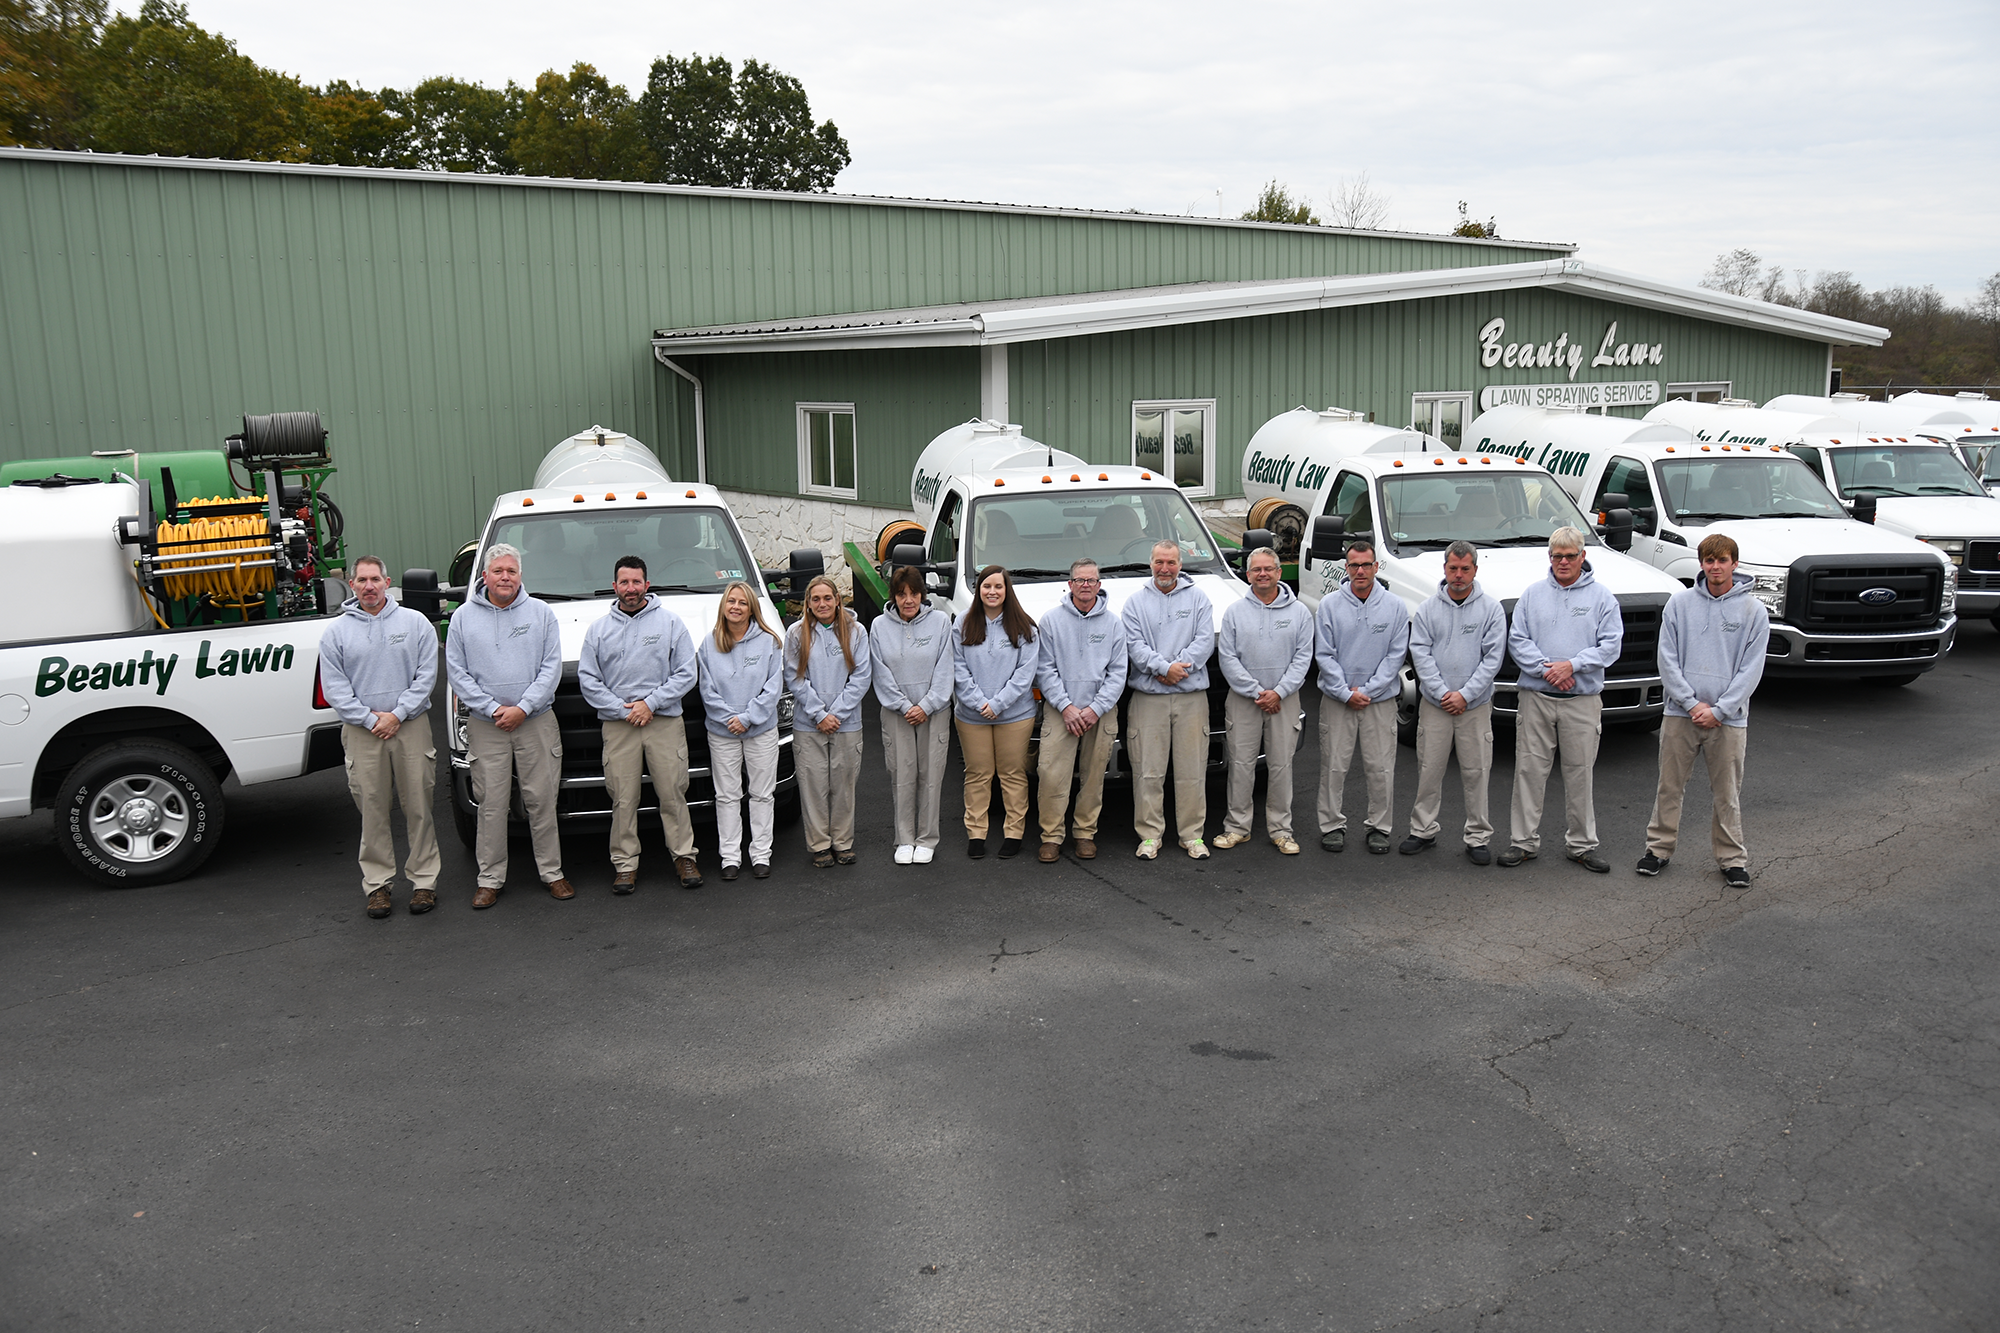 Beauty Lawn staff standing in front of trucks and building